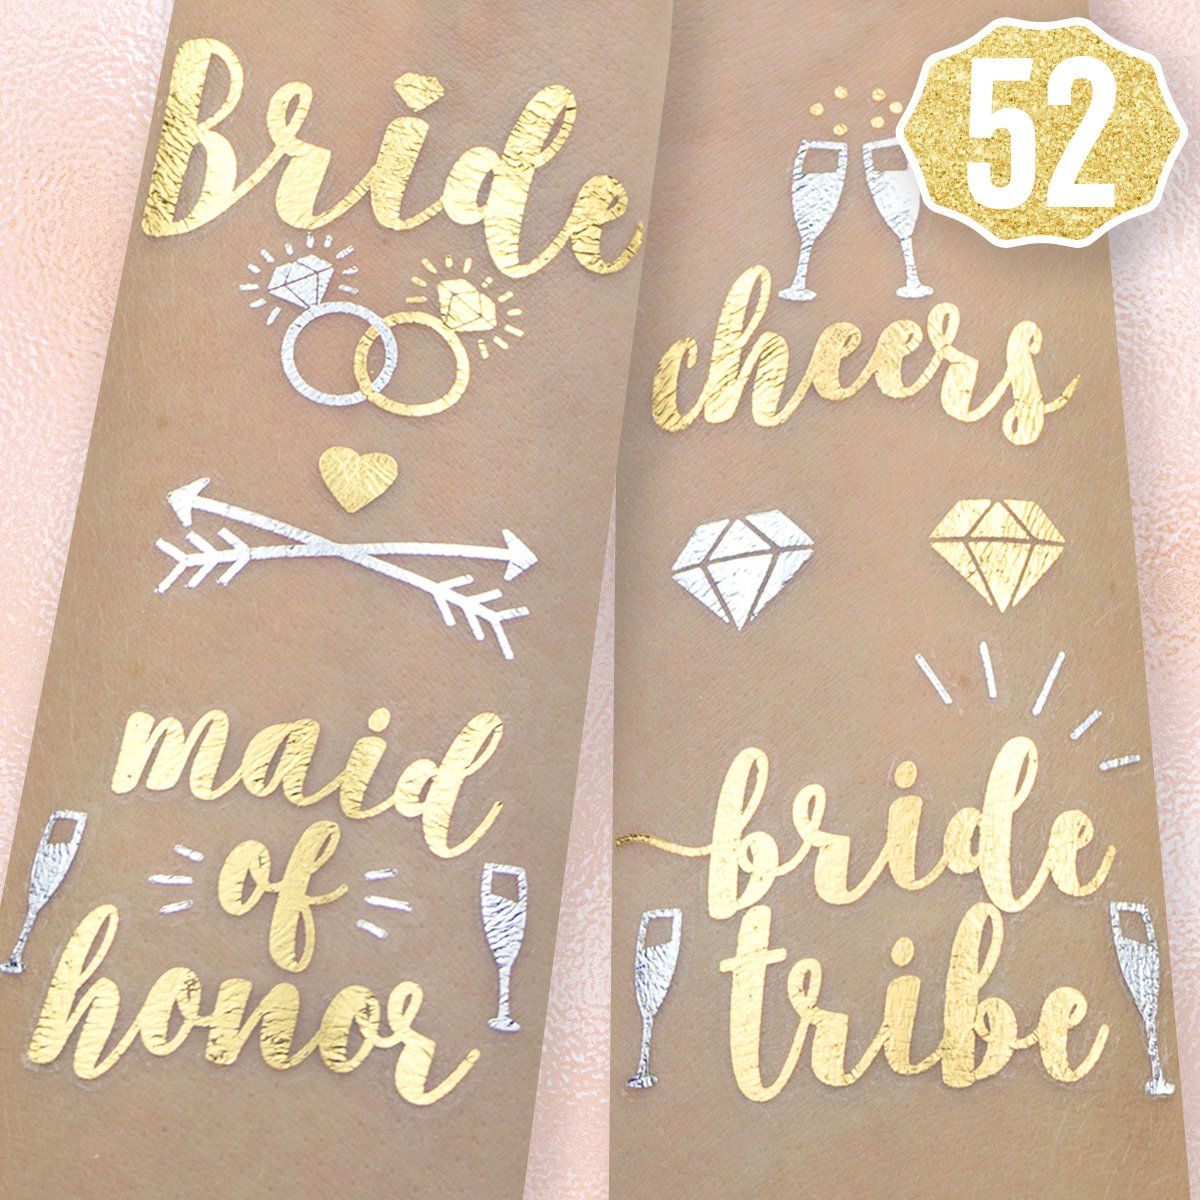 xo fetti bachelorette party flash tattoos bride tribe maid of honor 52